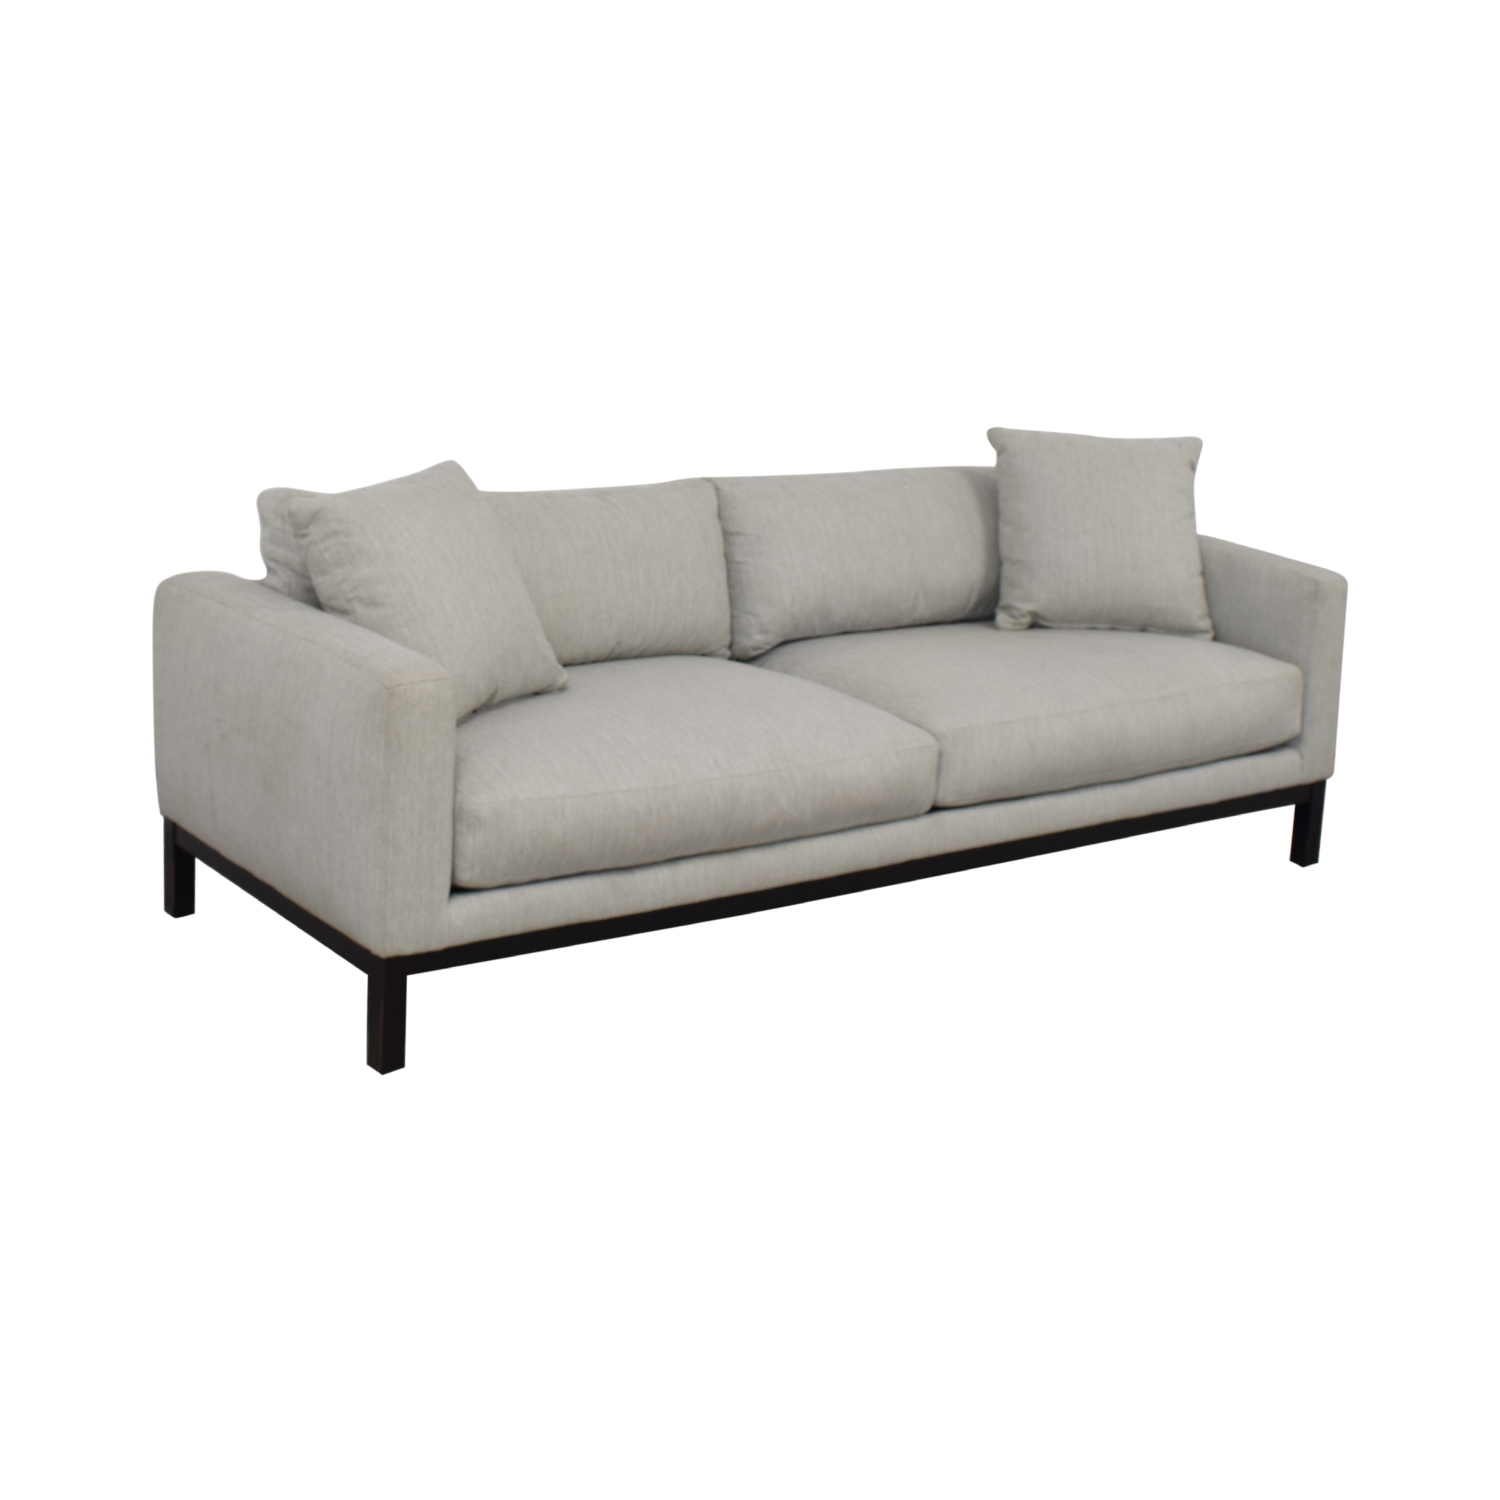 Rowe Furniture Rowe Furniture Contemporary Light Gray Upholstered Sofa GRAY